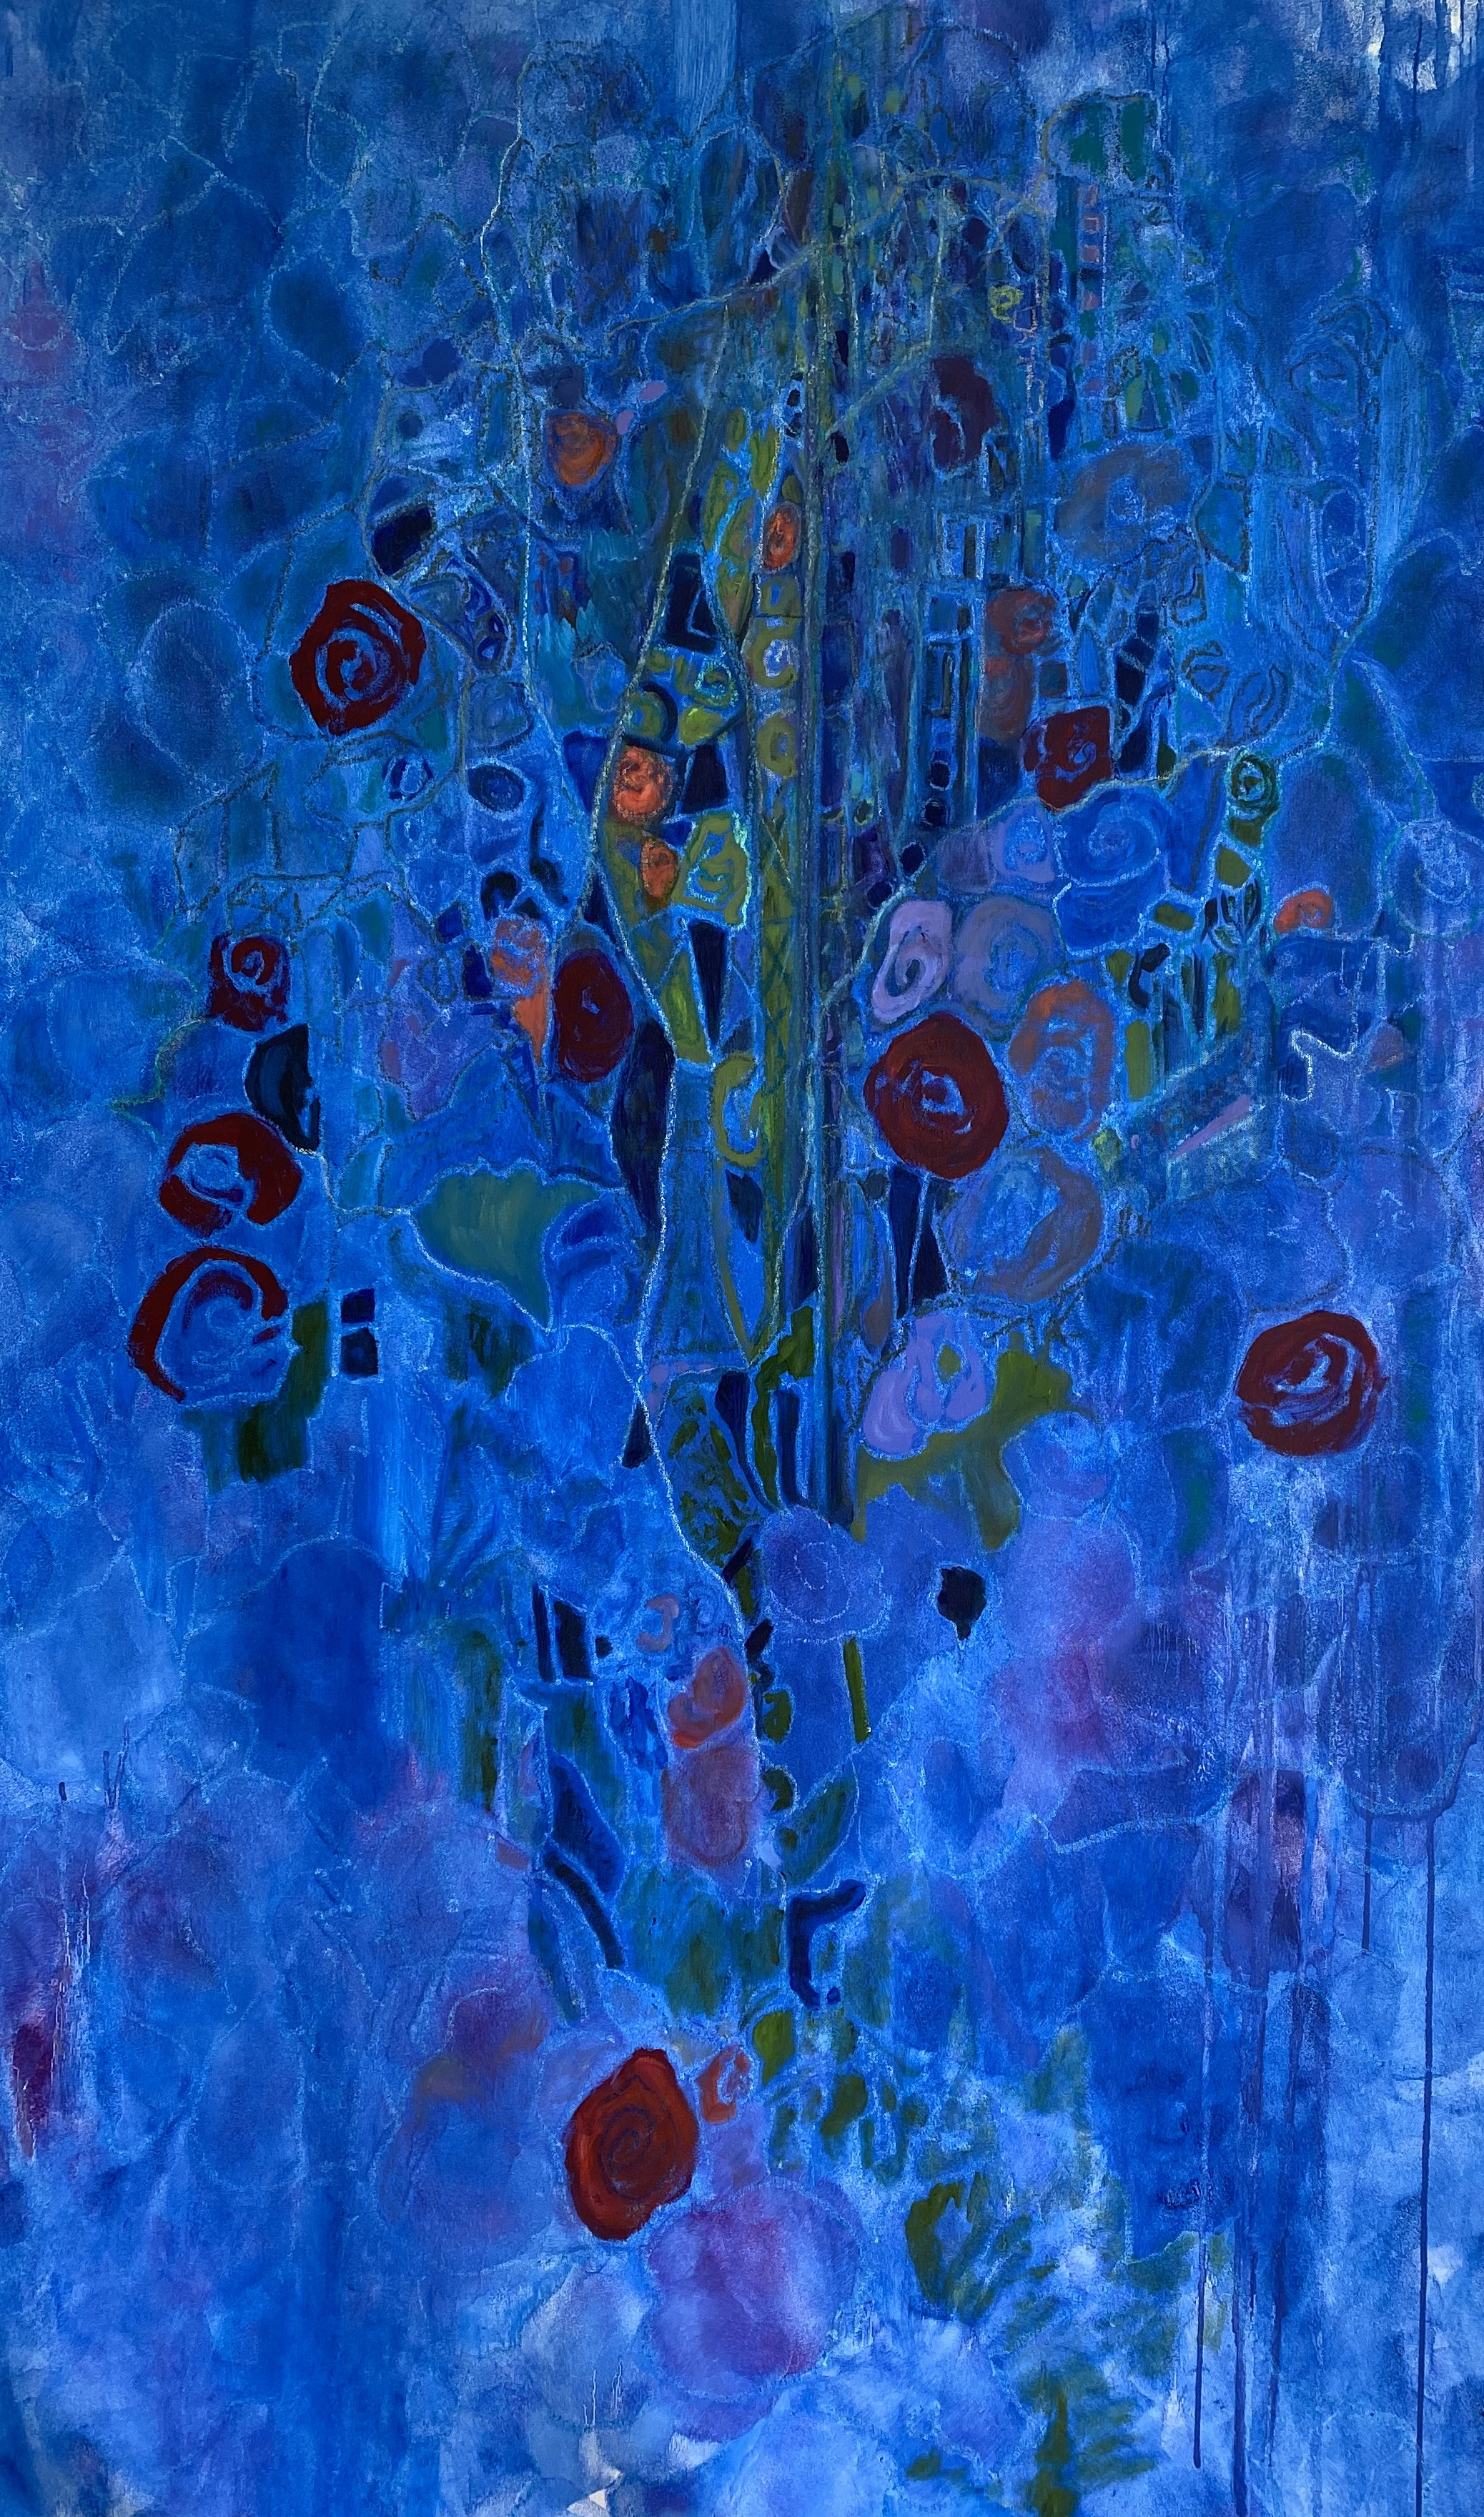 Gaslight Series No 4 Blue artwork by Laura Cohen - art listed for sale on Artplode